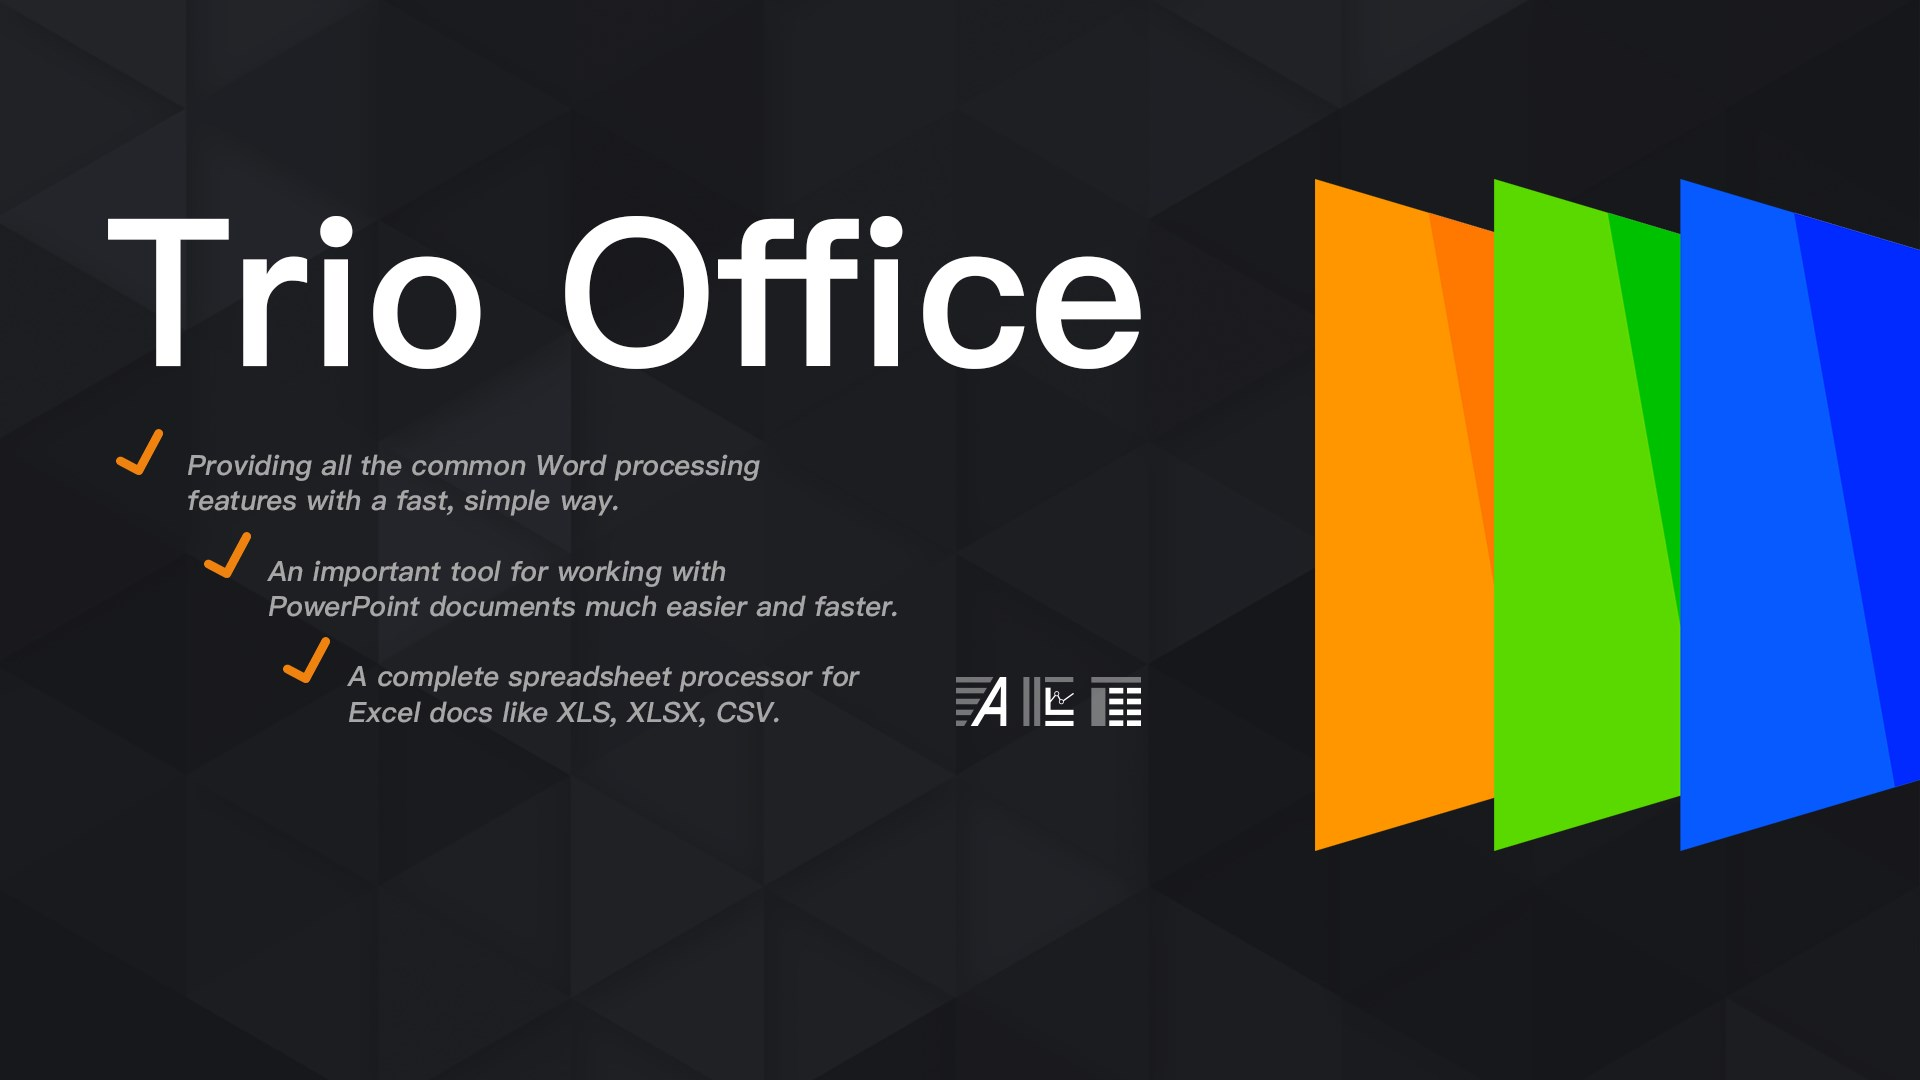 Get Trio Office: Word, Slide, Spreadsheet & PDF Compatible